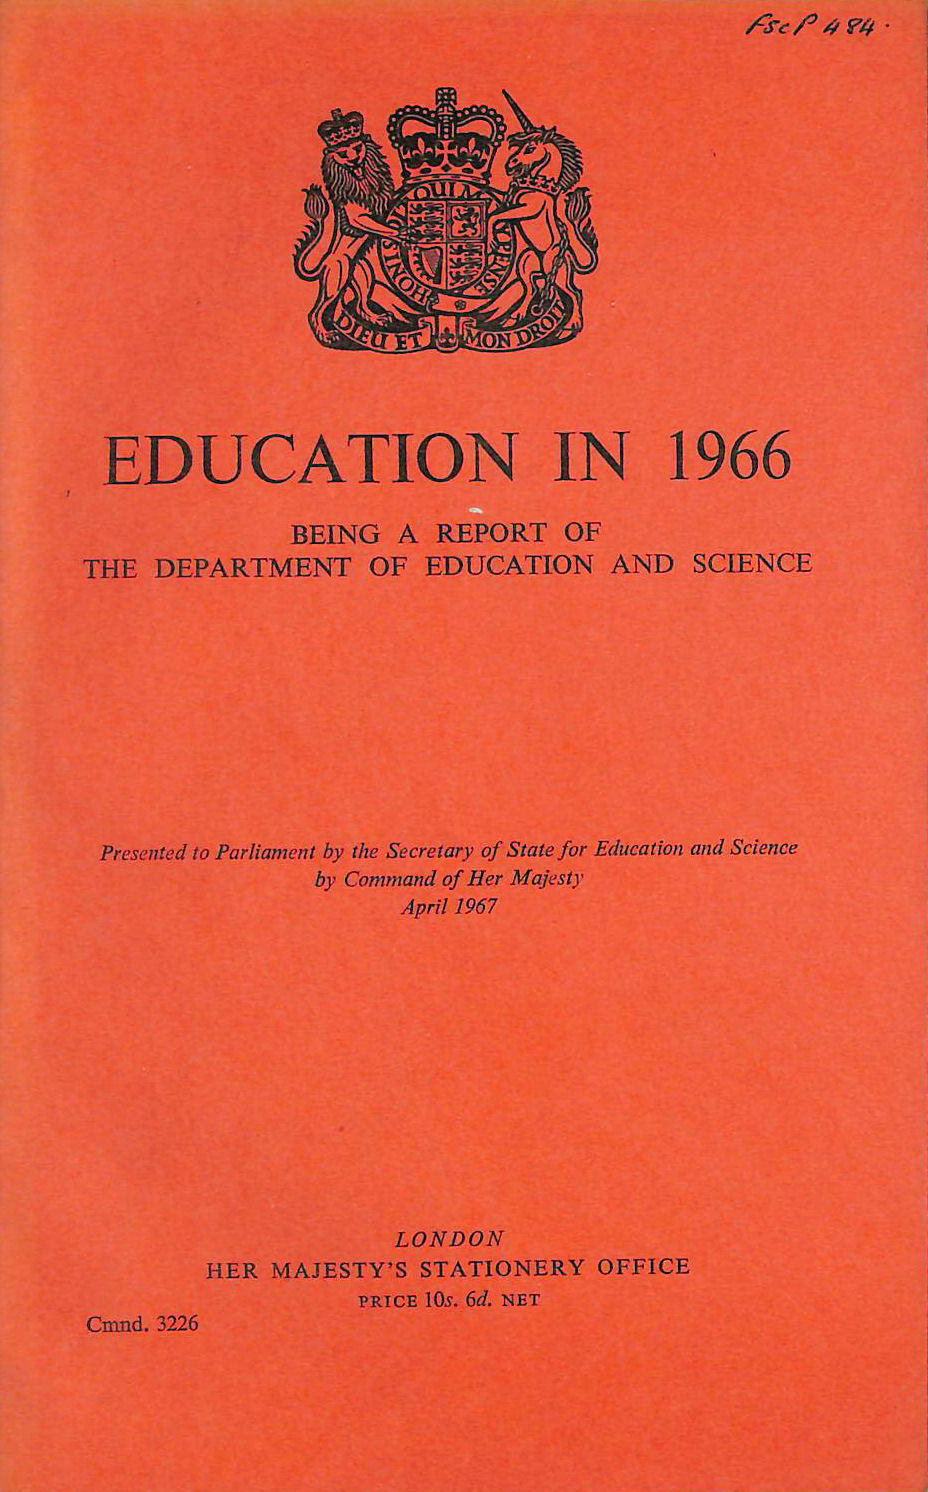 Image for Education in 1966: Being a Report of the Department of Education and Science.